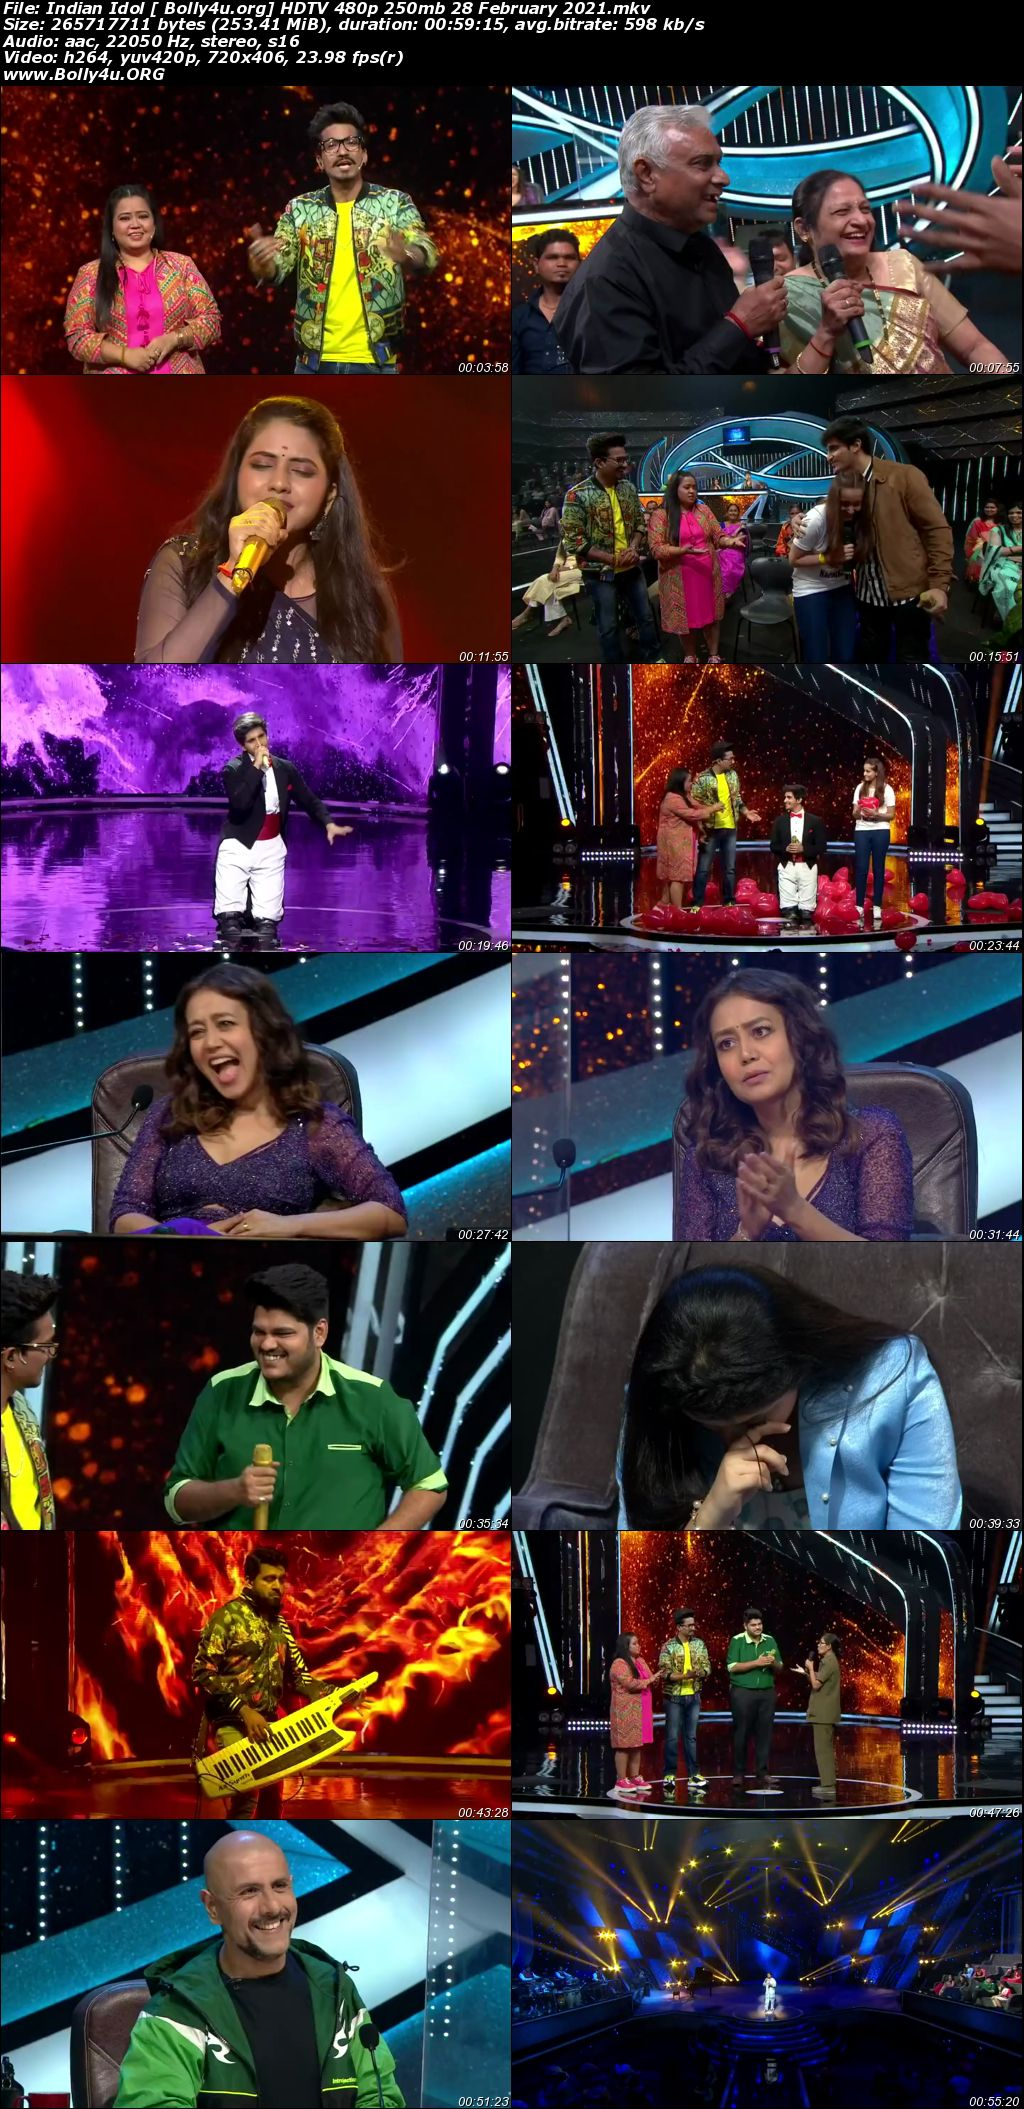 Indian Idol 2021 HDTV 480p 250mb 28 February 2021 Download